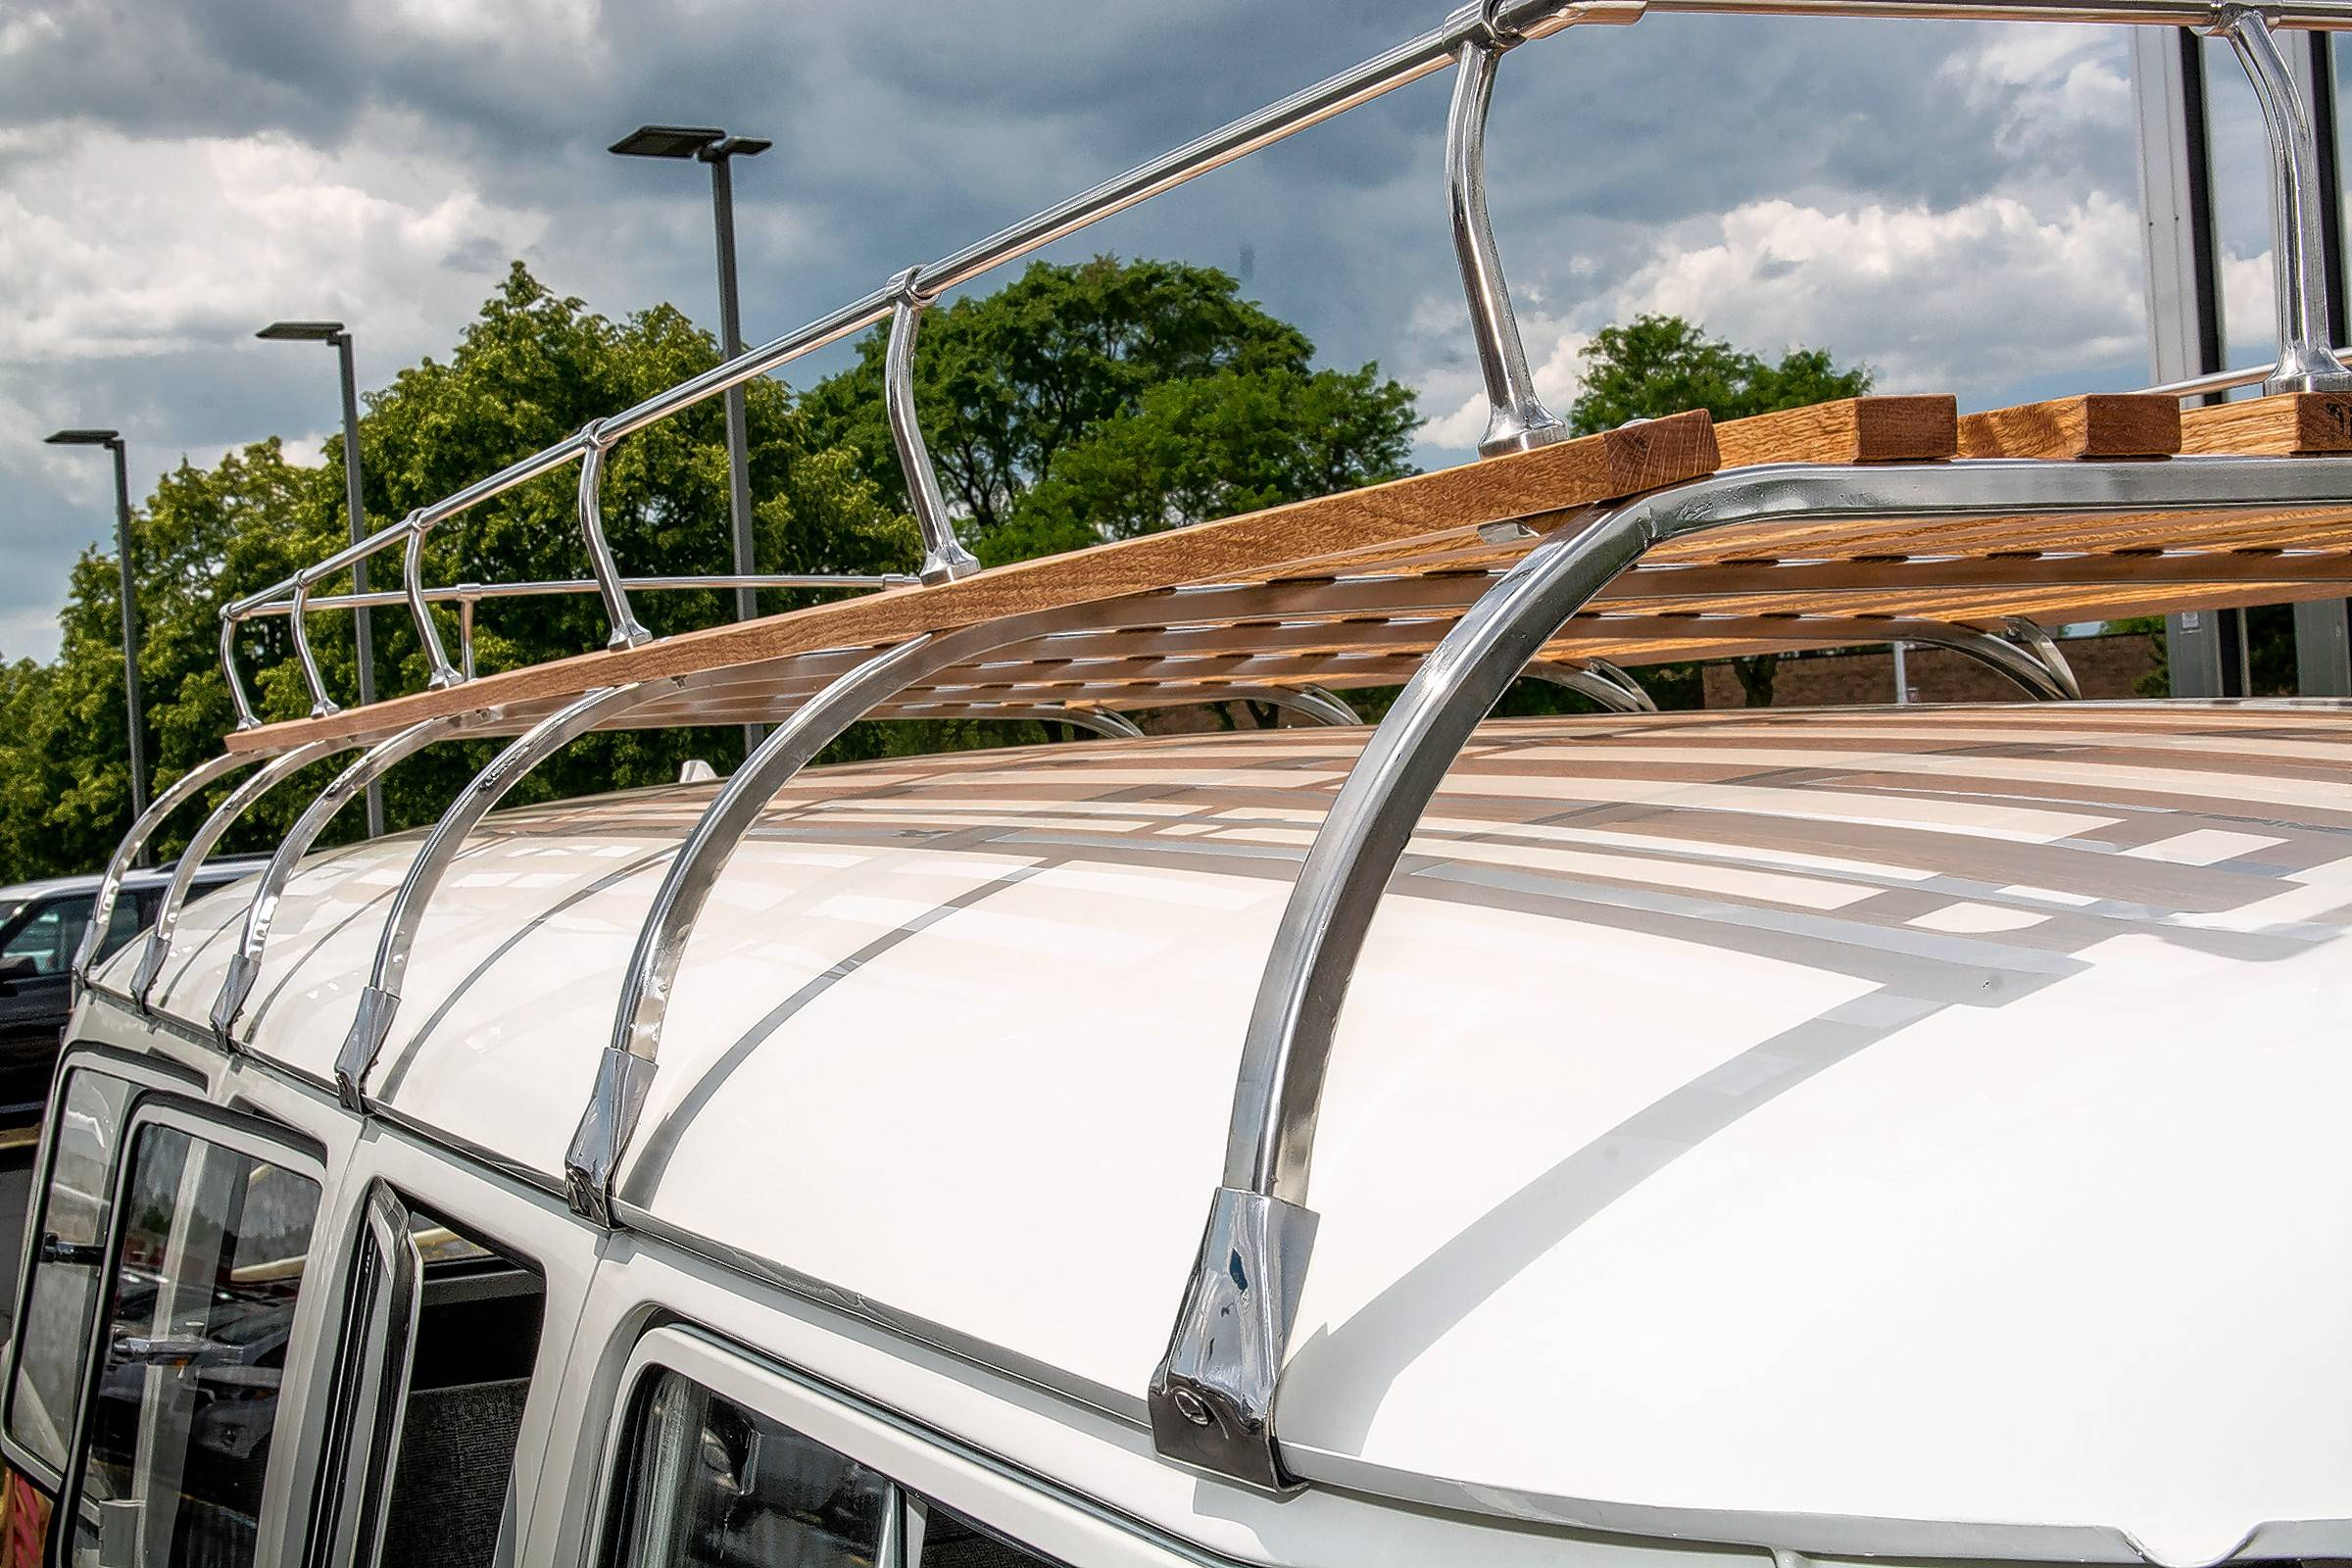 Malpica added the vintage wood and metal roof rack to the bus, giving it more of the beach vibe.